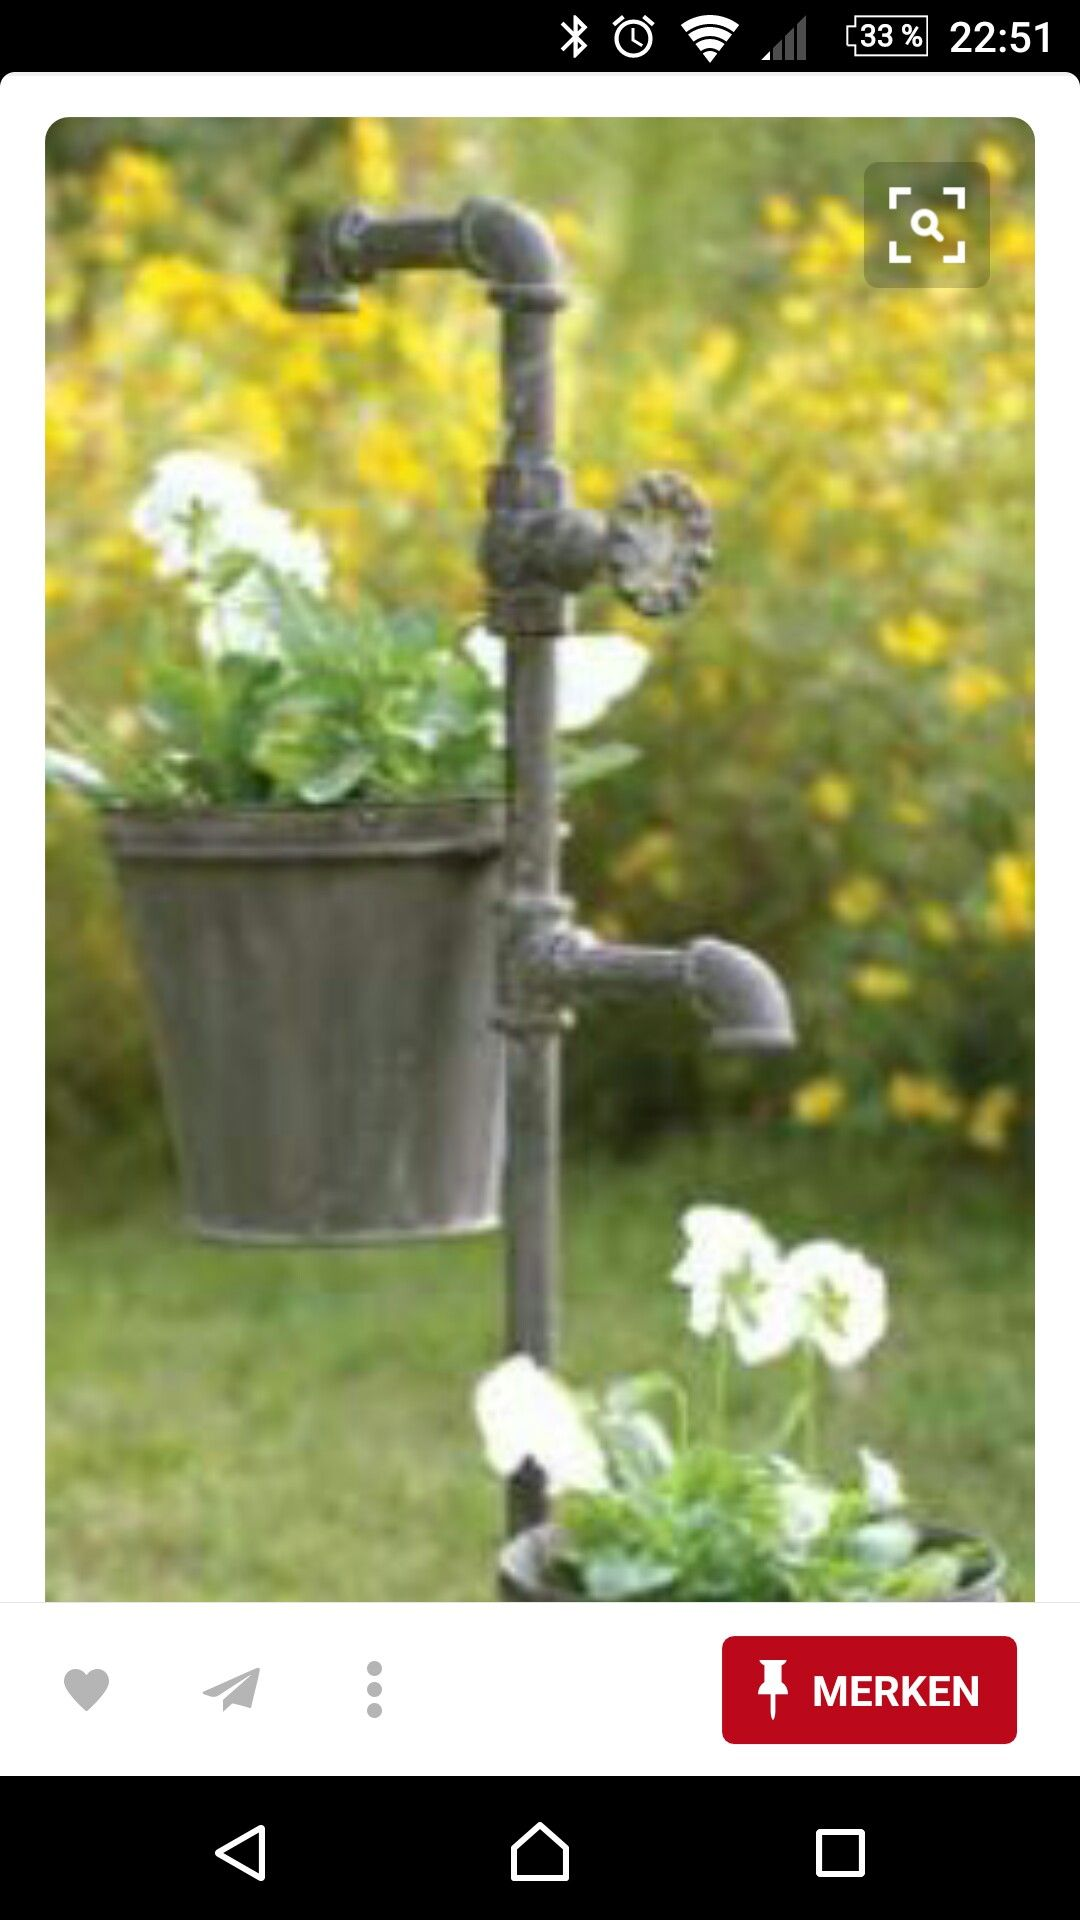 Could hang solar lights or lanterns too | Outdoor Home Ideas ...